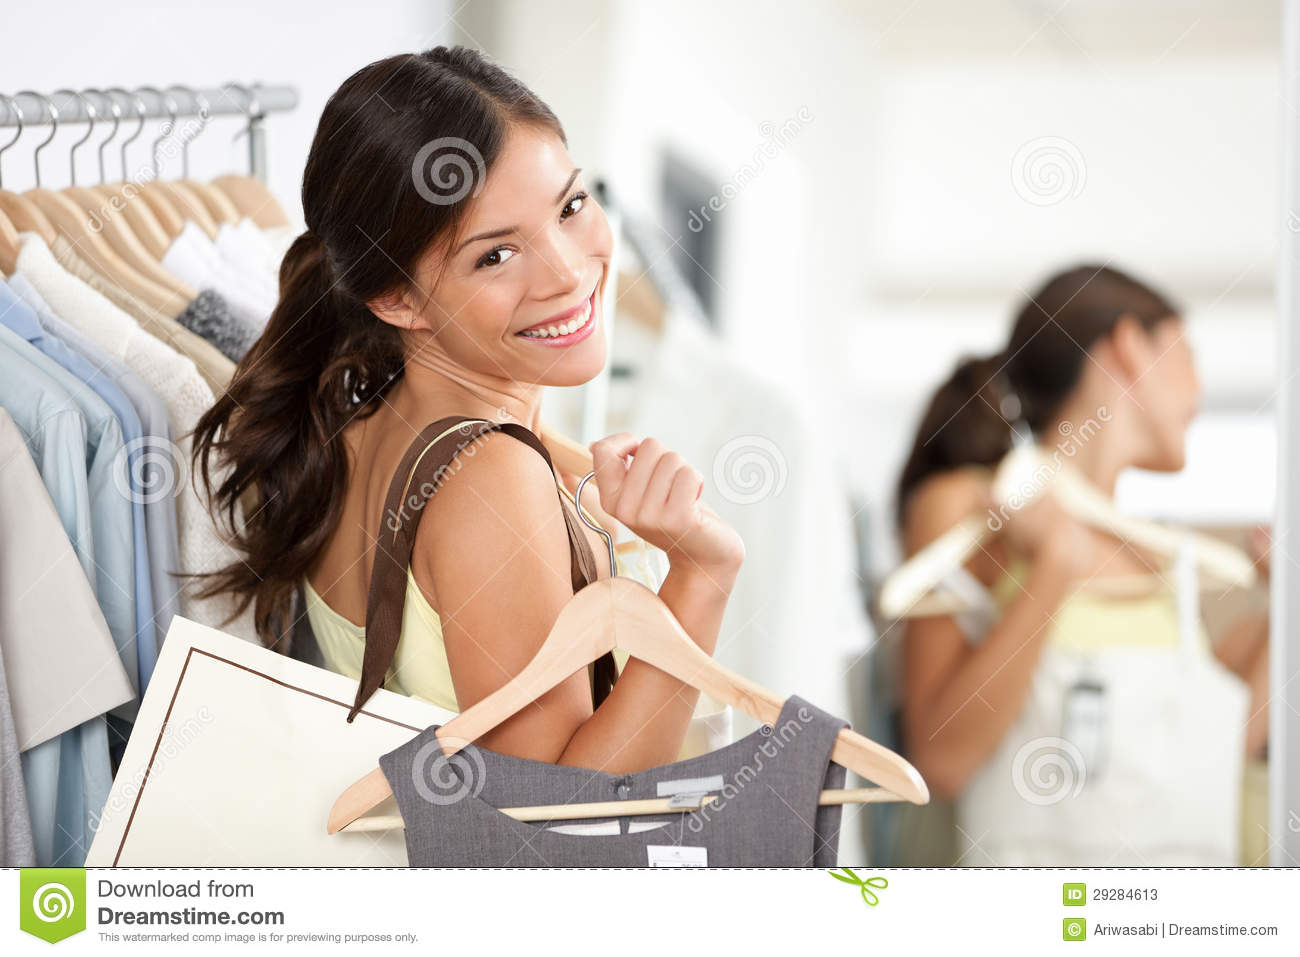 Casual Clothes Online Shopping